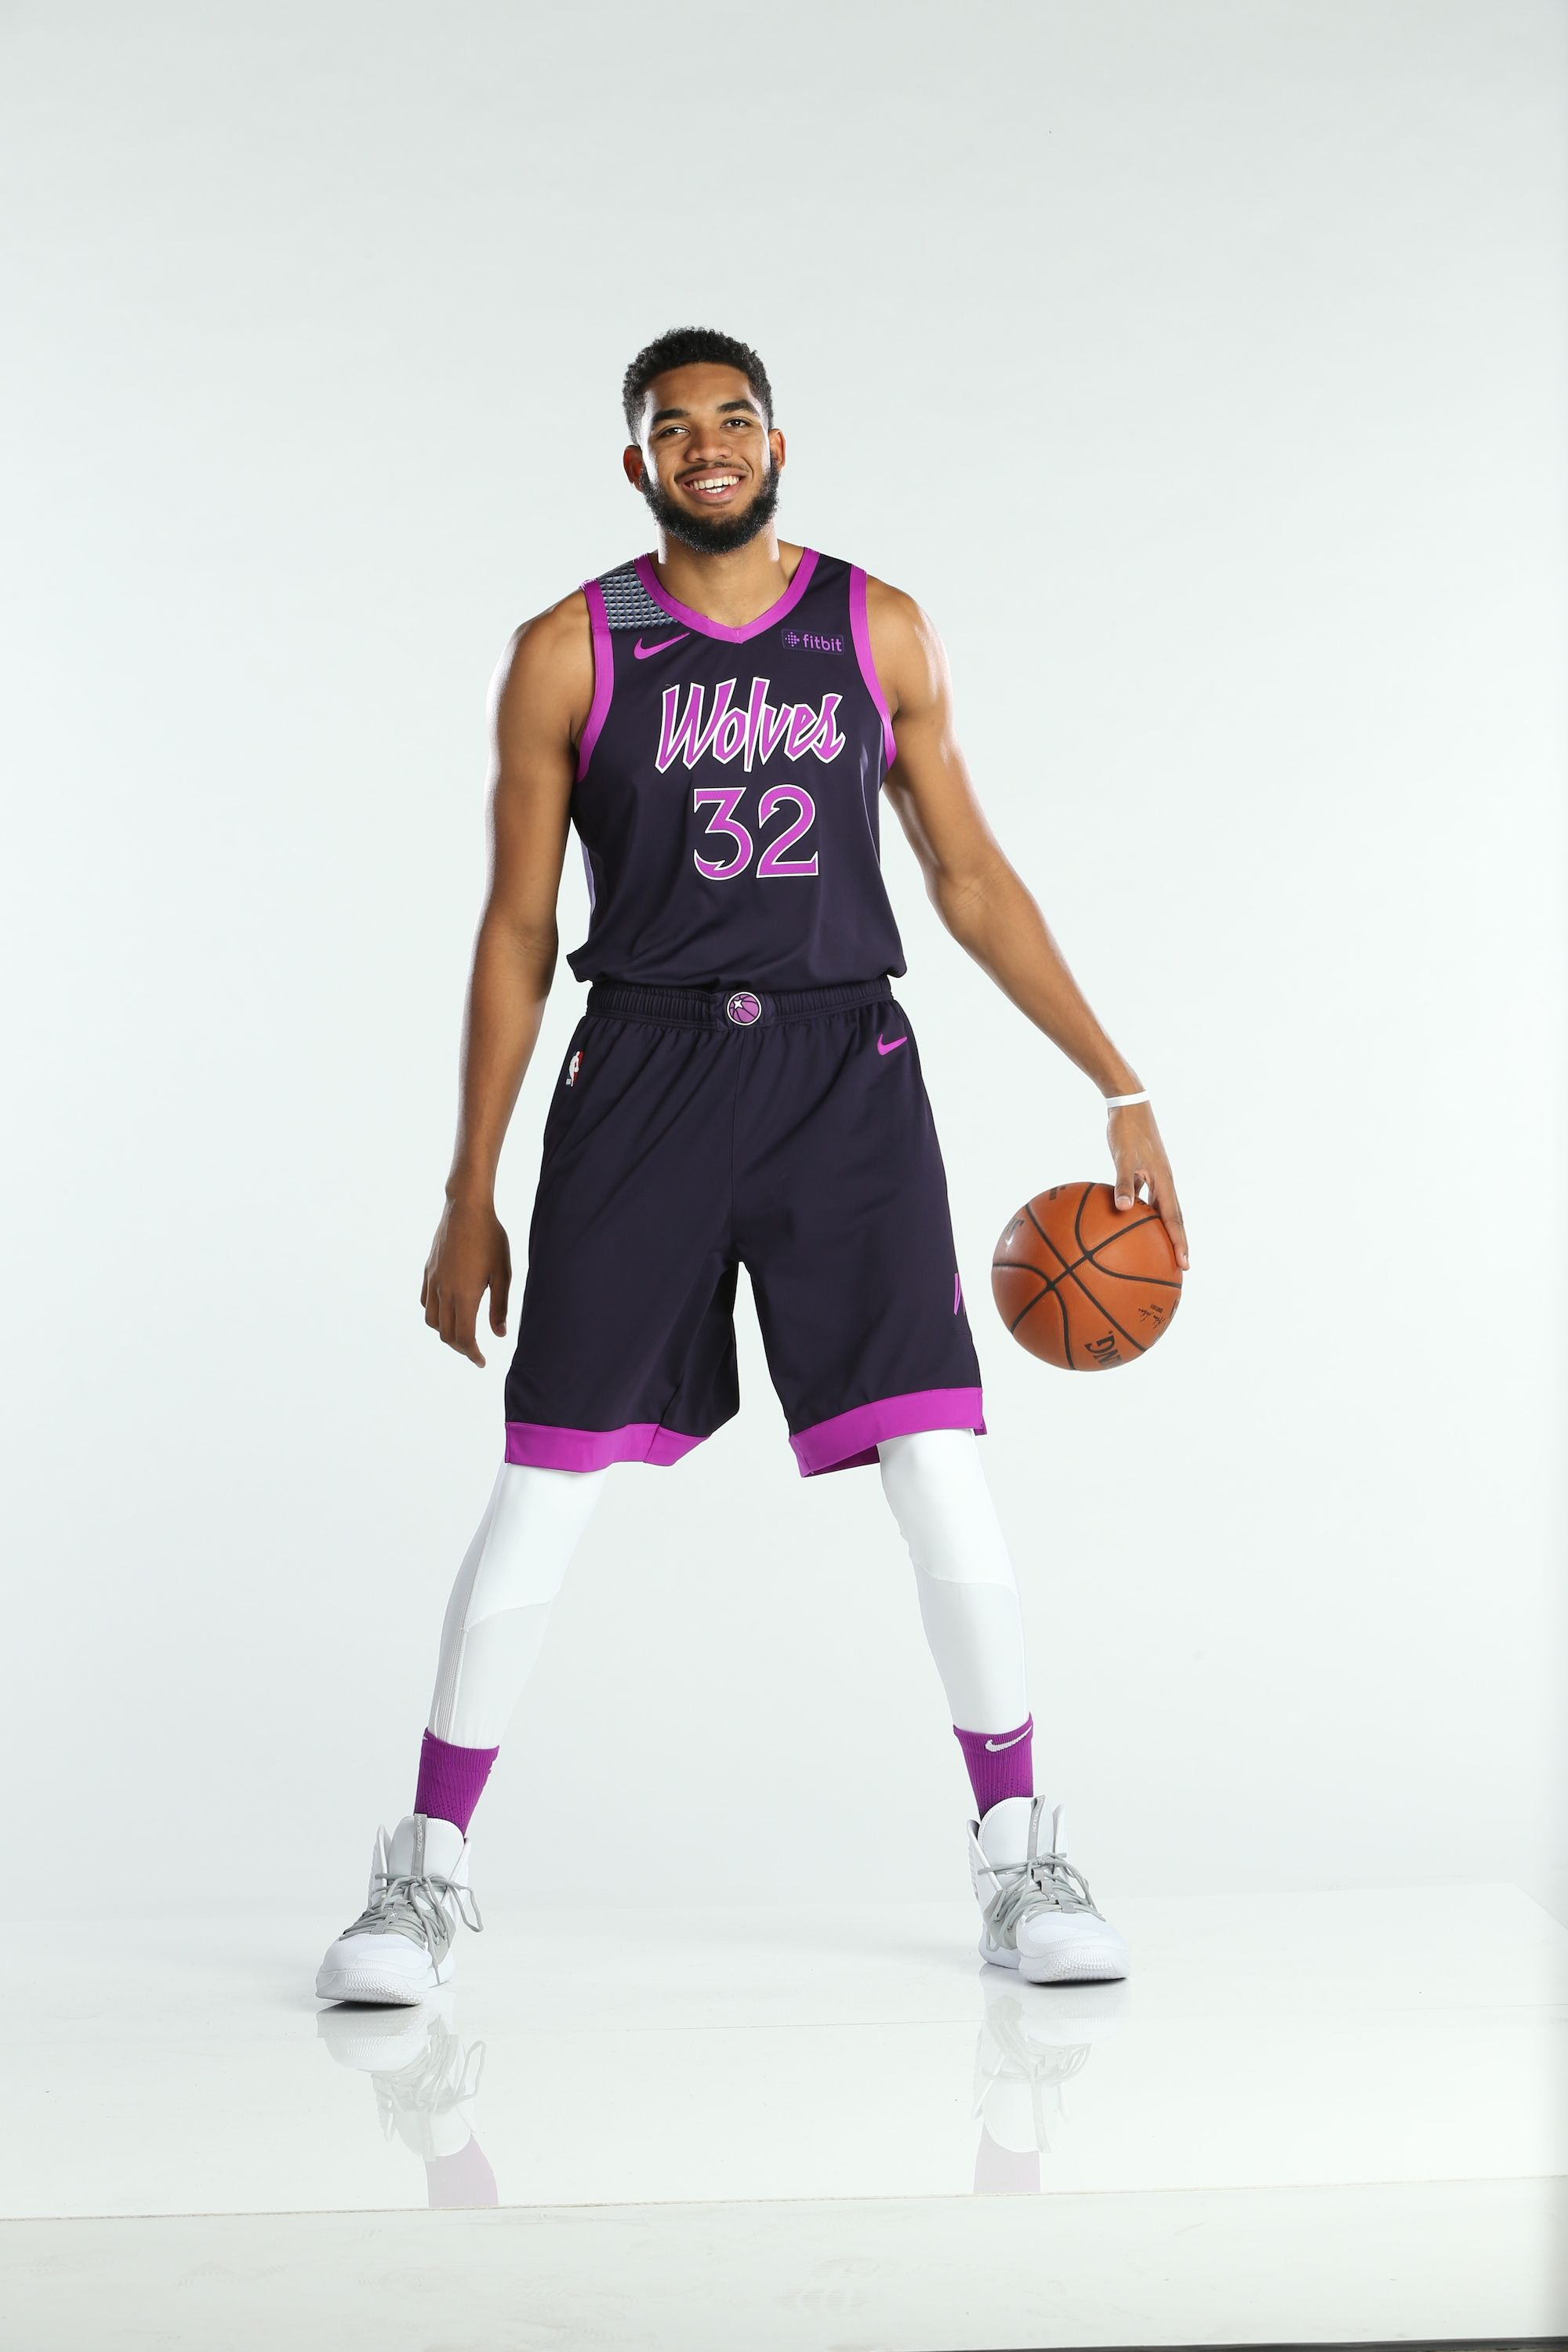 aed1d5c5100 Minnesota Timberwolves Prince Uniform - Prince Purple Rain Basketball  Uniform